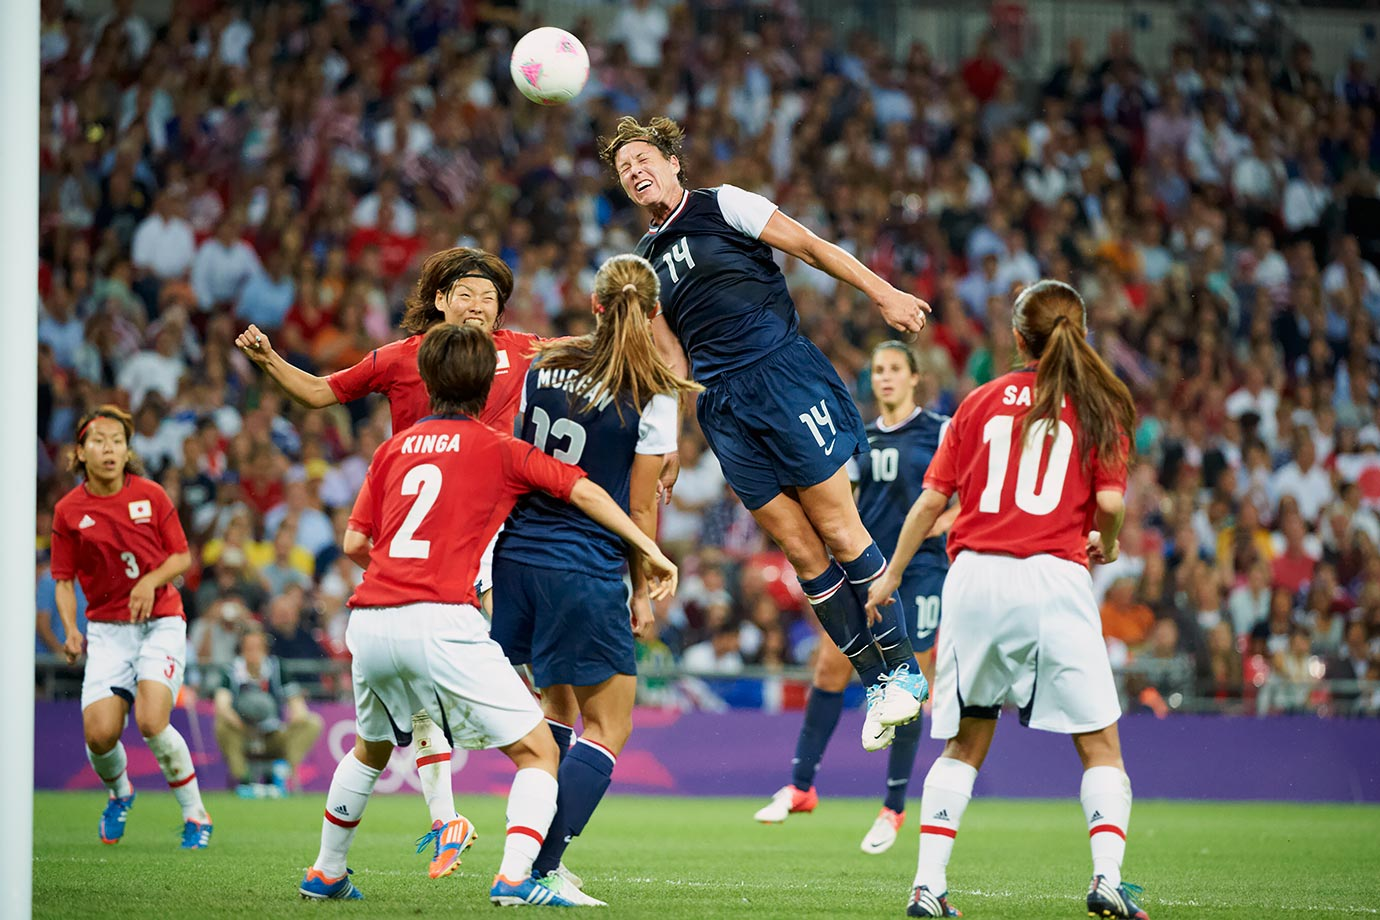 Aug. 9, 2012 — Summer Olympics, USA vs. Japan